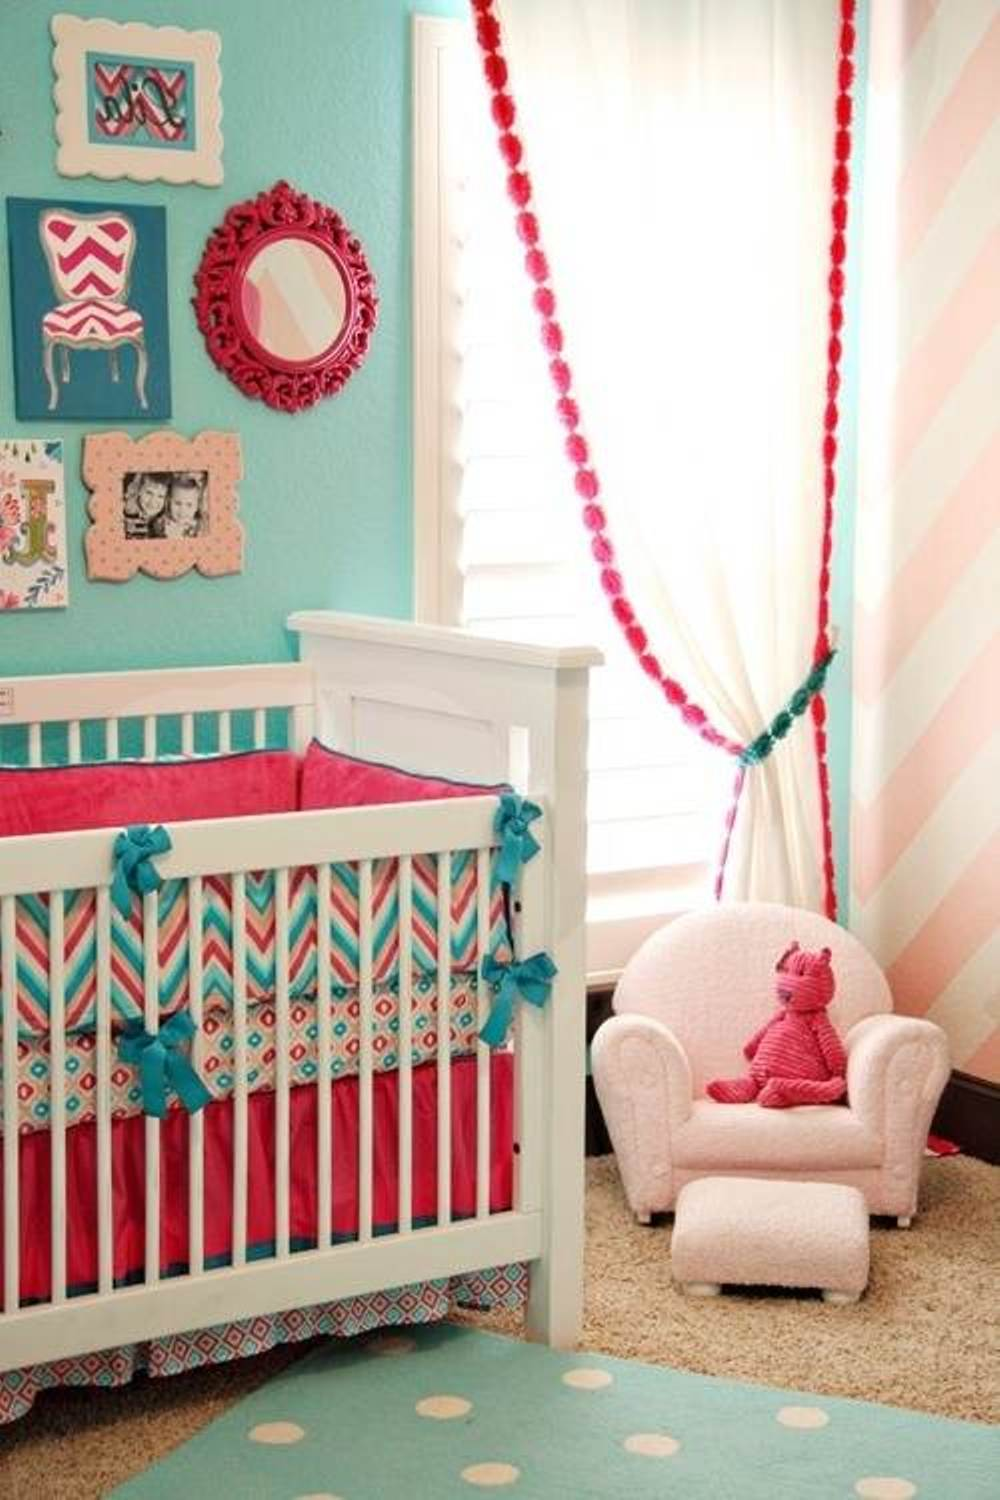 25 baby bedroom design ideas for your cutie pie Baby girl decorating room